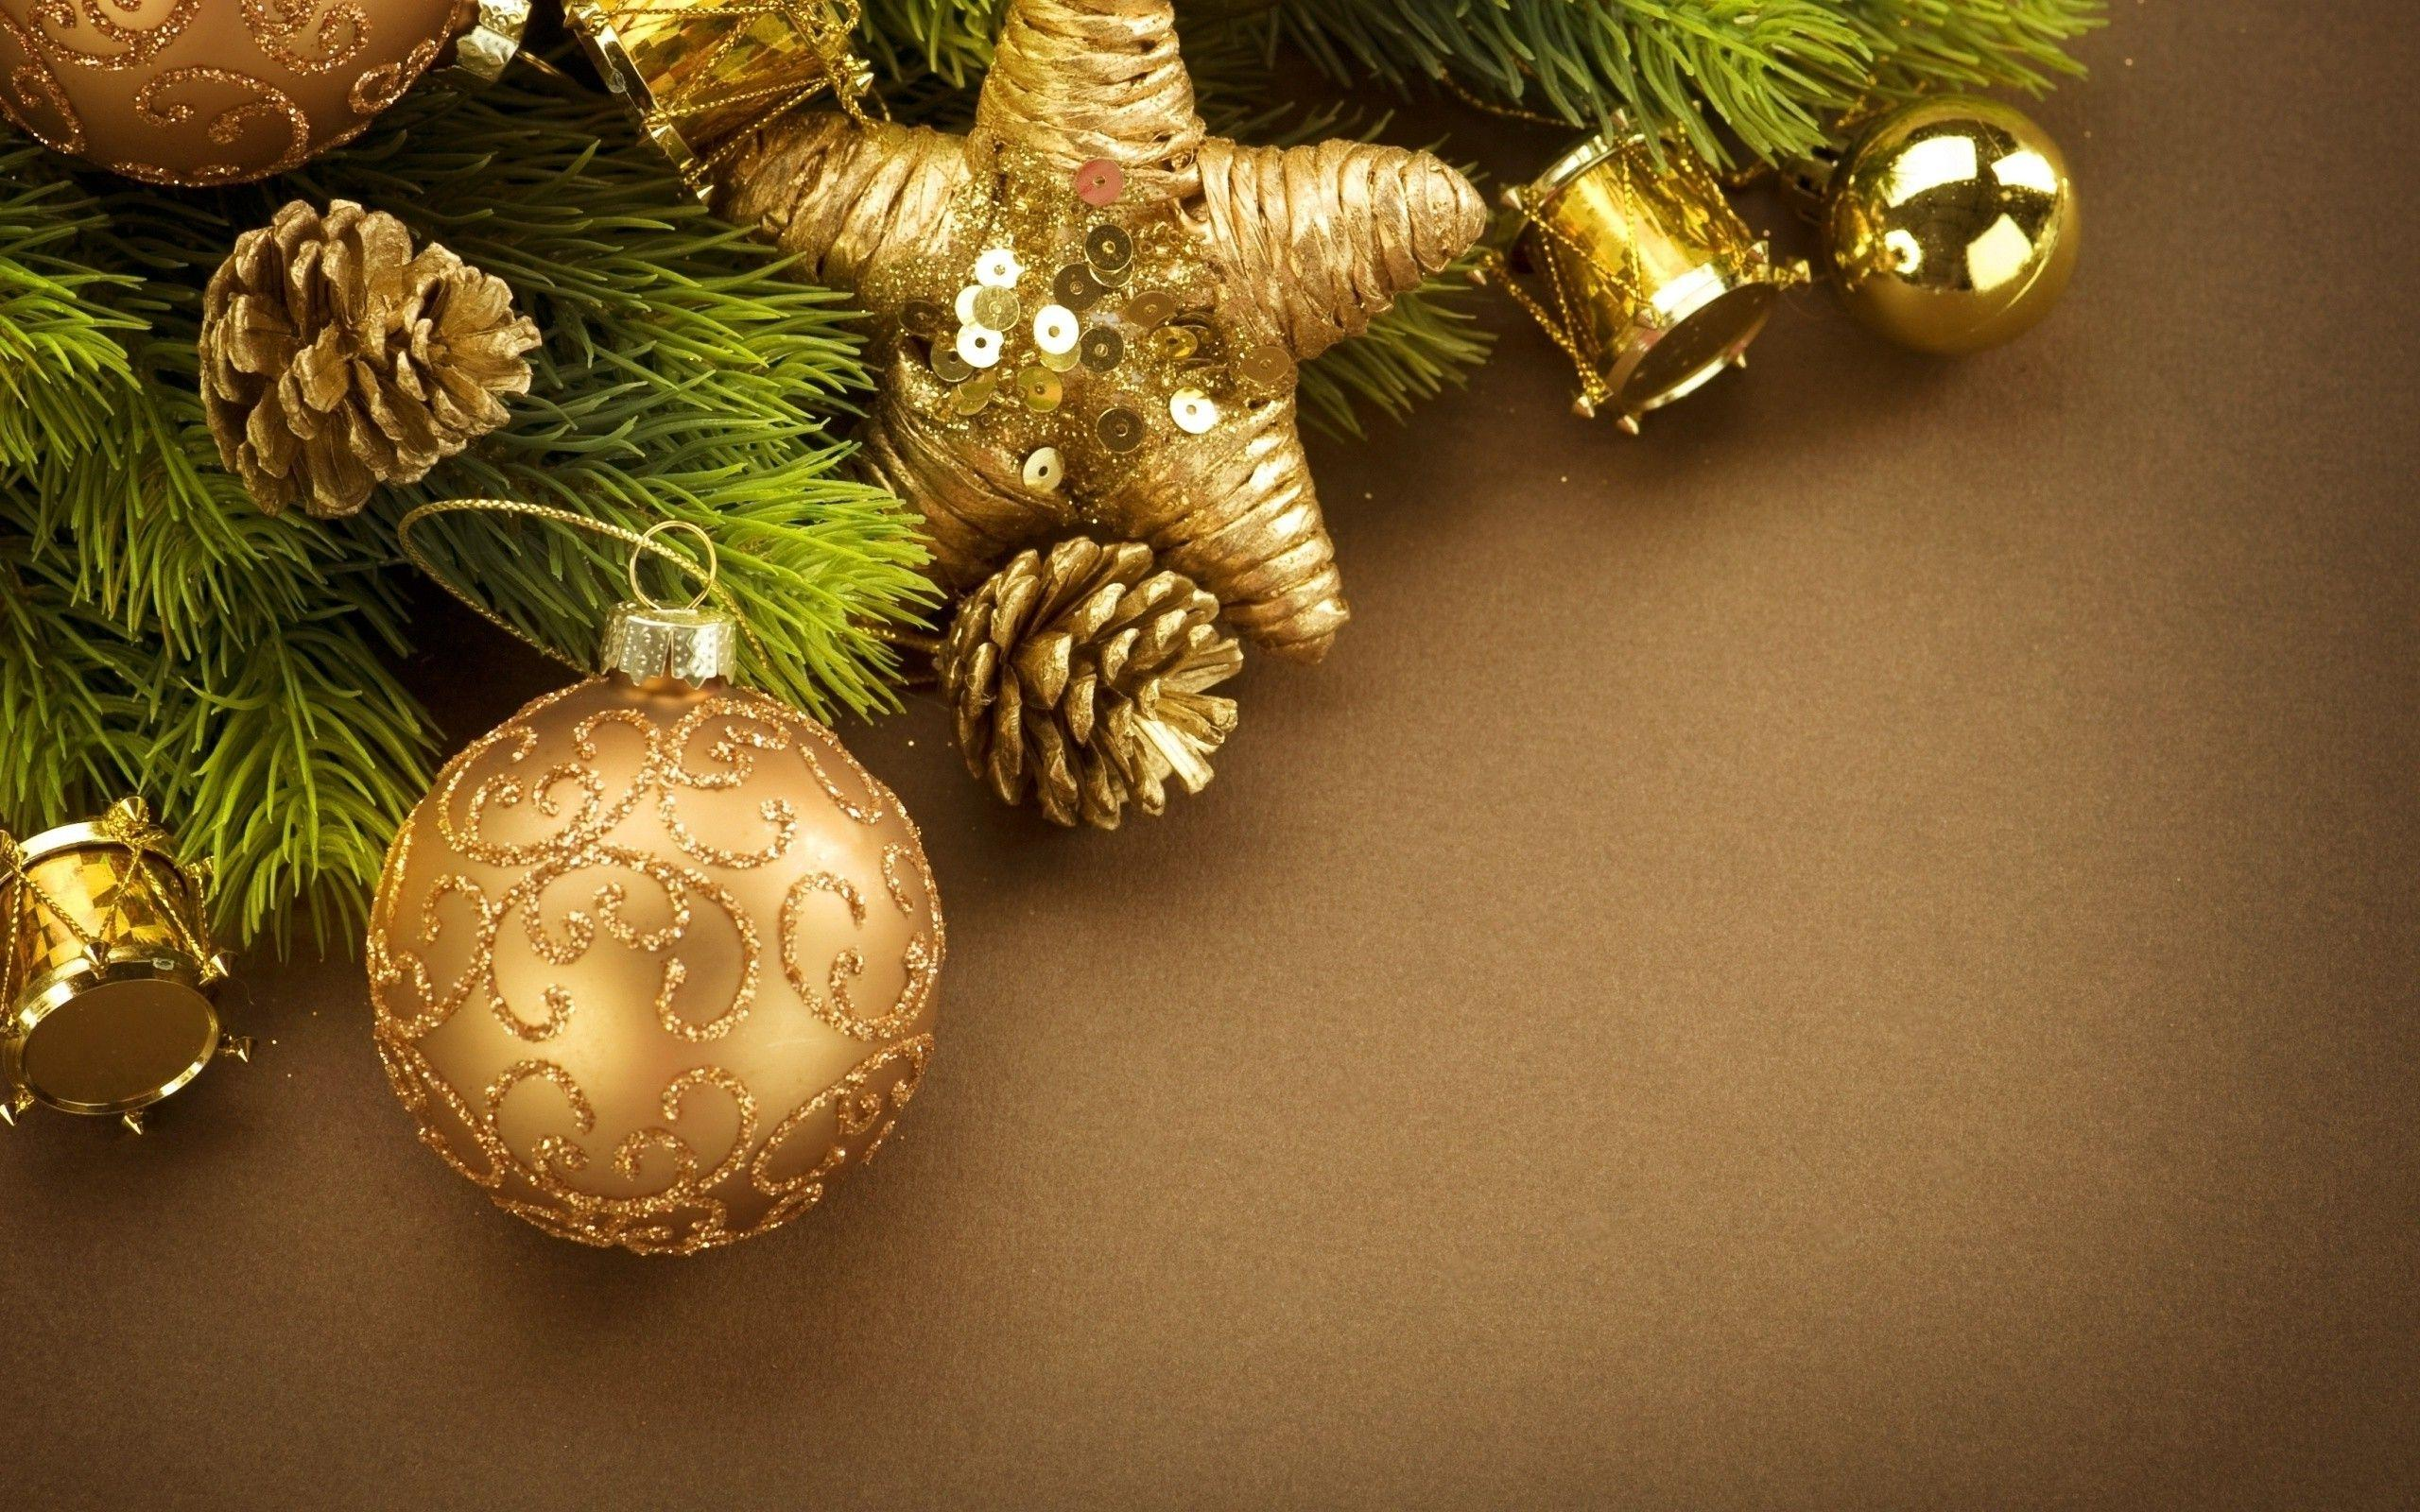 New Year, Christmas Ornaments, Cones, Leaves, Decorations